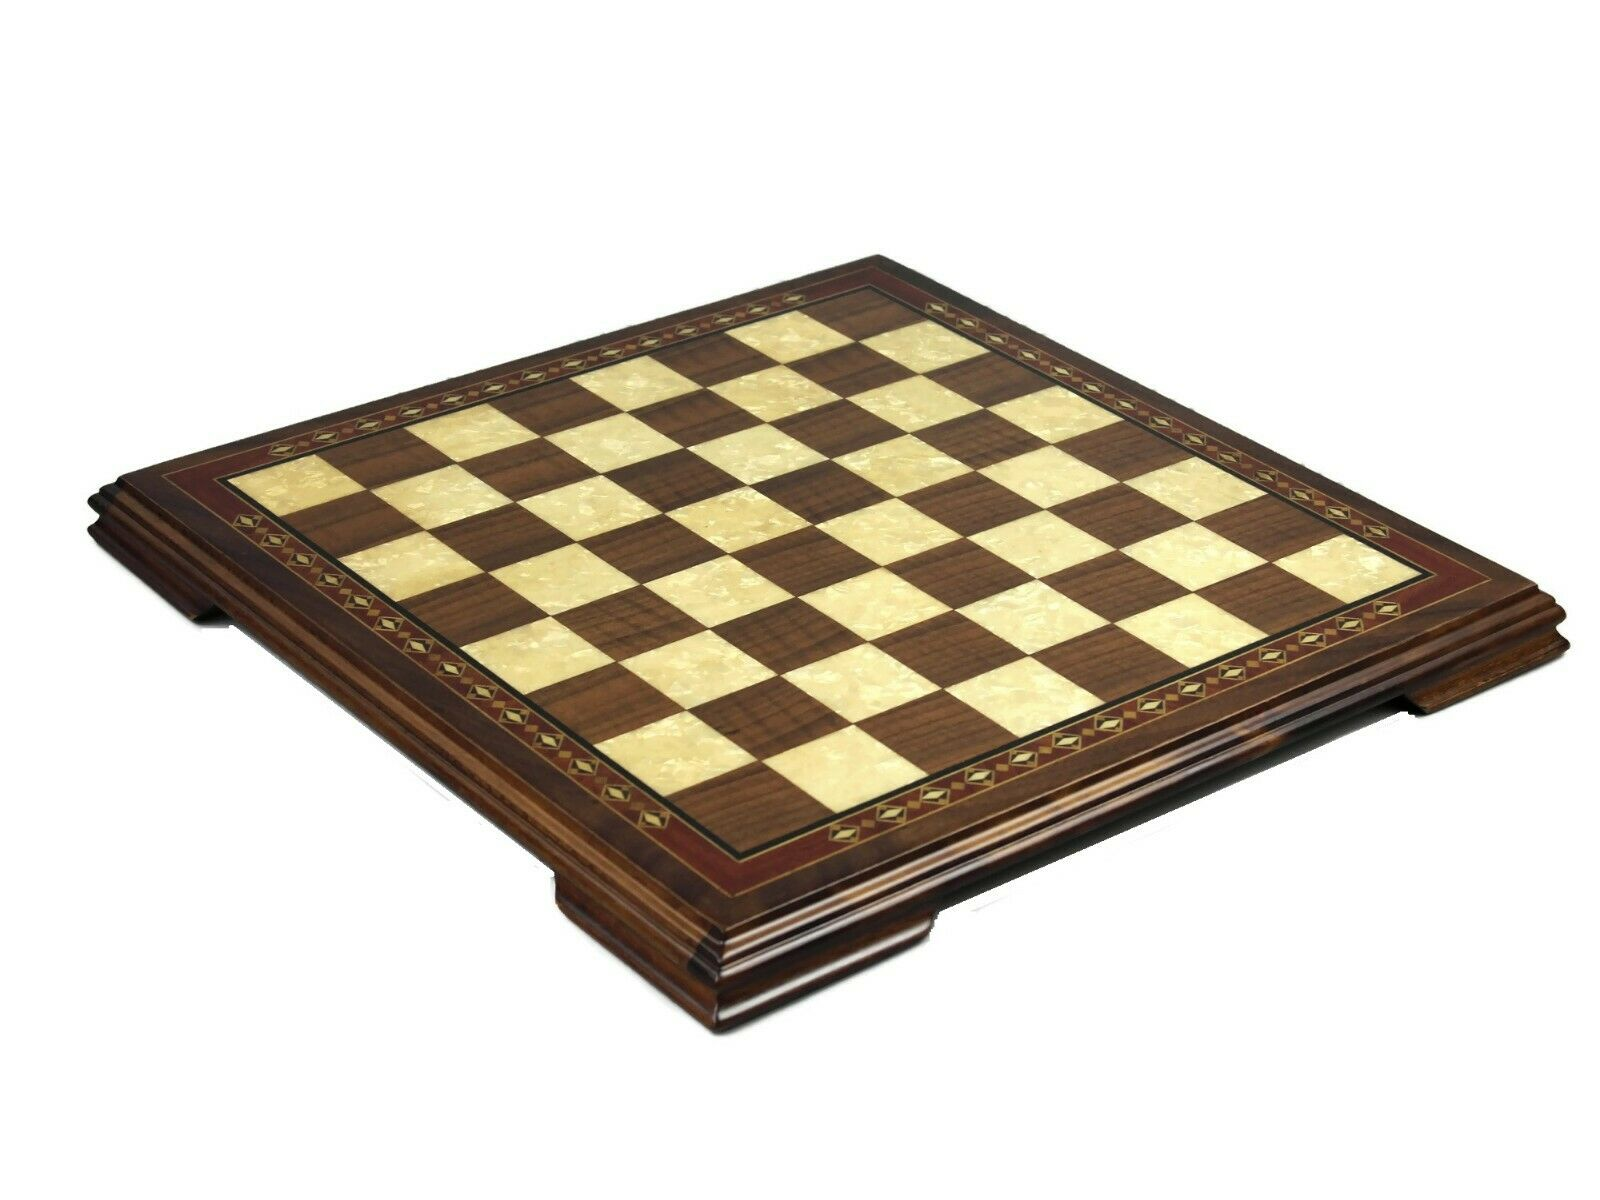 CHESS BOARD WOODEN SET SOLID WALNUT WOOD  HELENA  MOTHER OF PEARL 17 -2654W